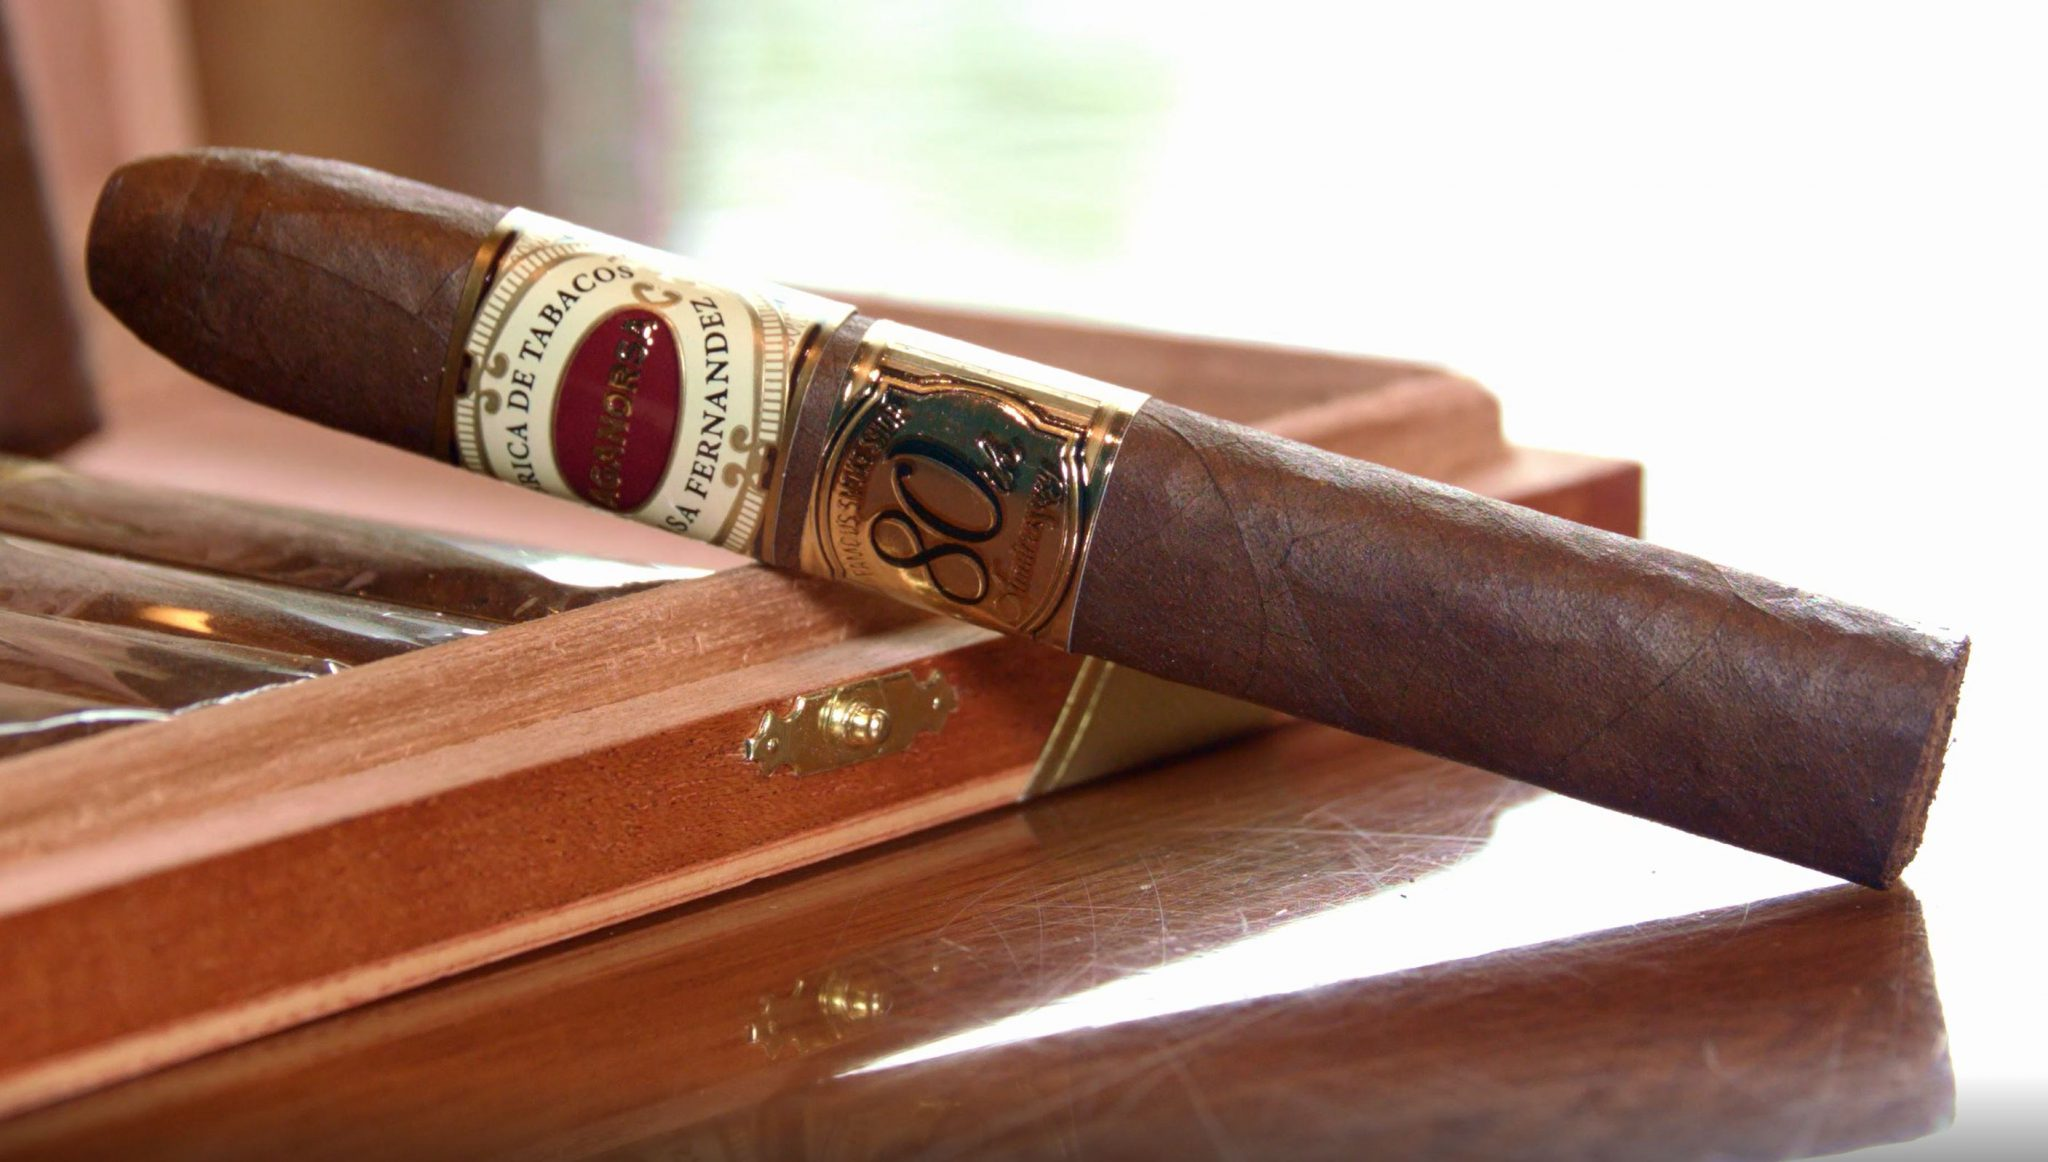 Aganorsa Leaf Famous 80th Anniversary Cigar Review video single cigar horizontal